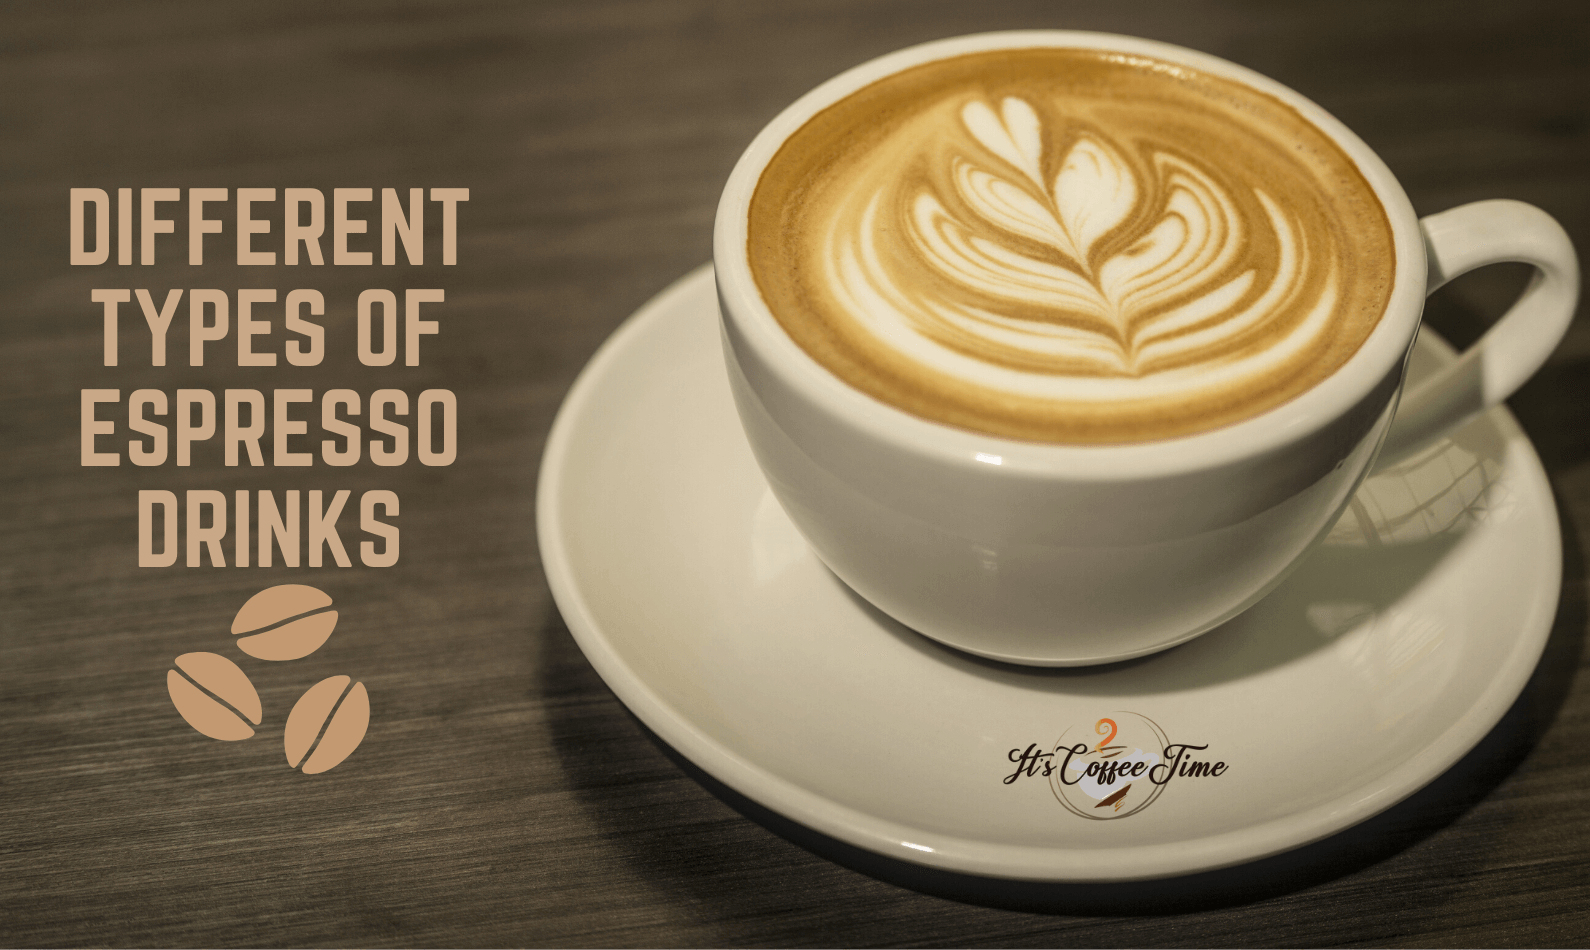 Different Types of Espresso Drinks